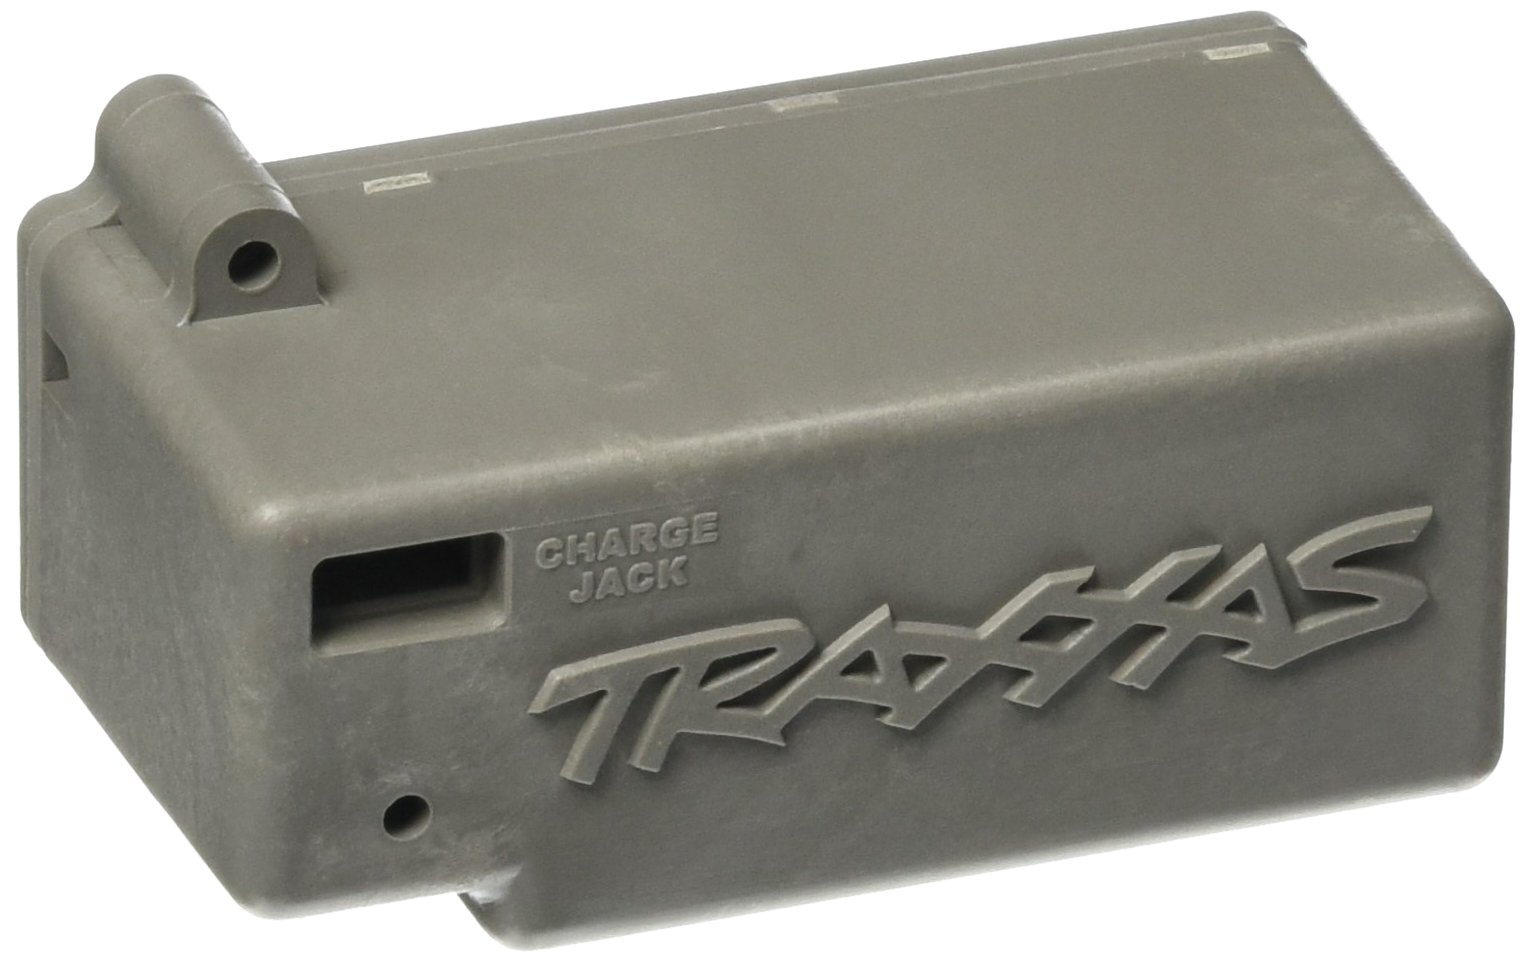 Traxxas 4925X Battery Box, Grey